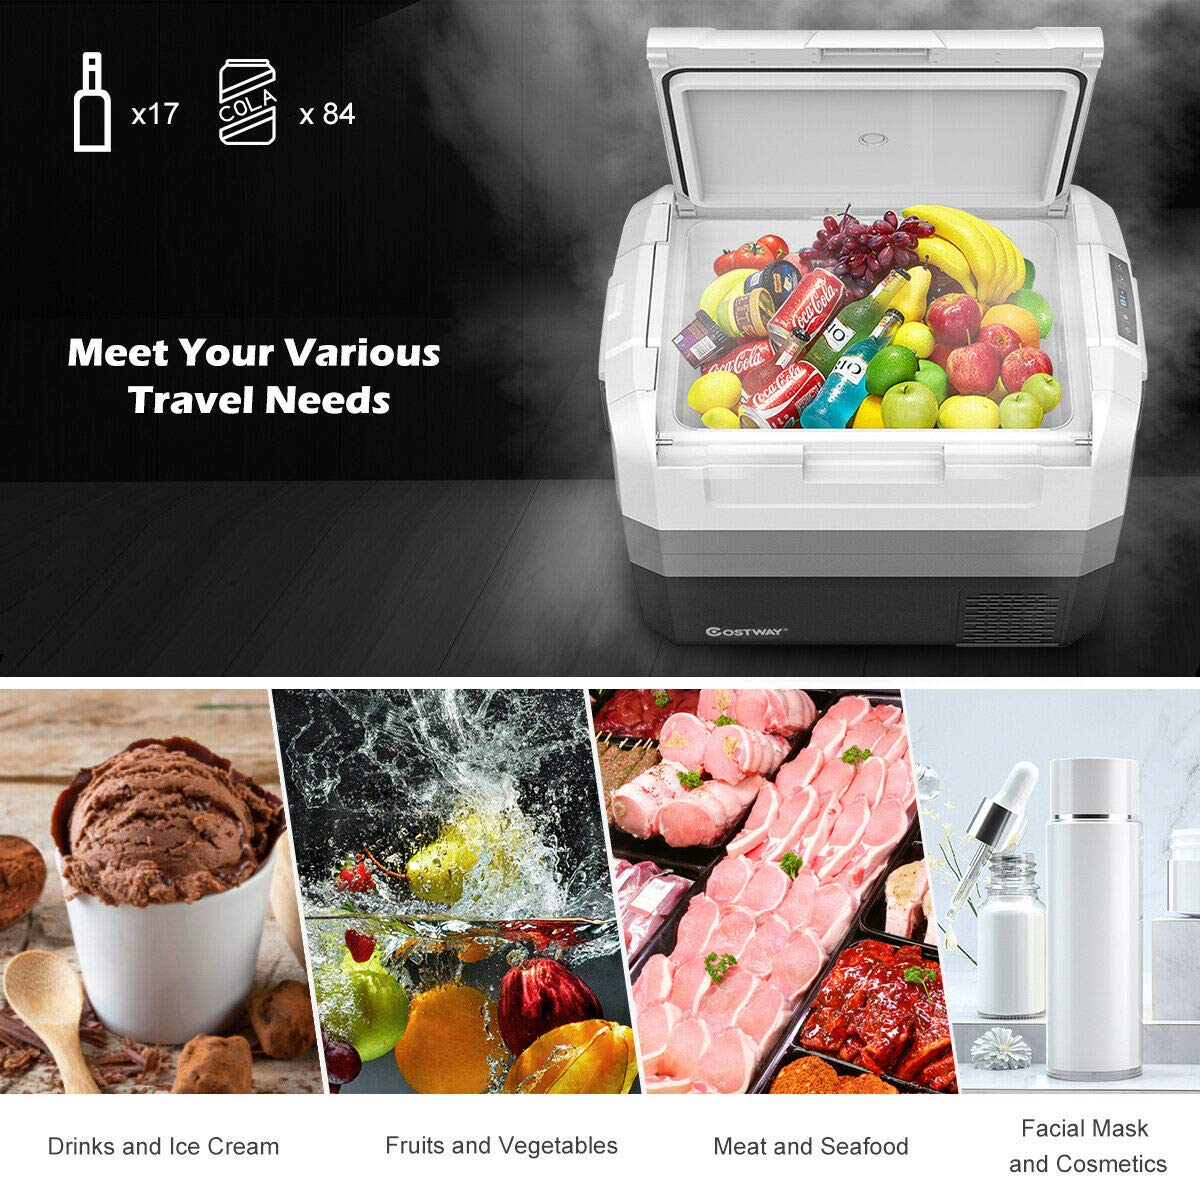 Operating Panel Compact RV Refrigerator and Cooler for Outdoor and Home Use -14.8/°F to 50/°F COSTWAY Portable Car Freezer 58-Quart Compressor Travel Fridge with Two-way Open Door Groove Design